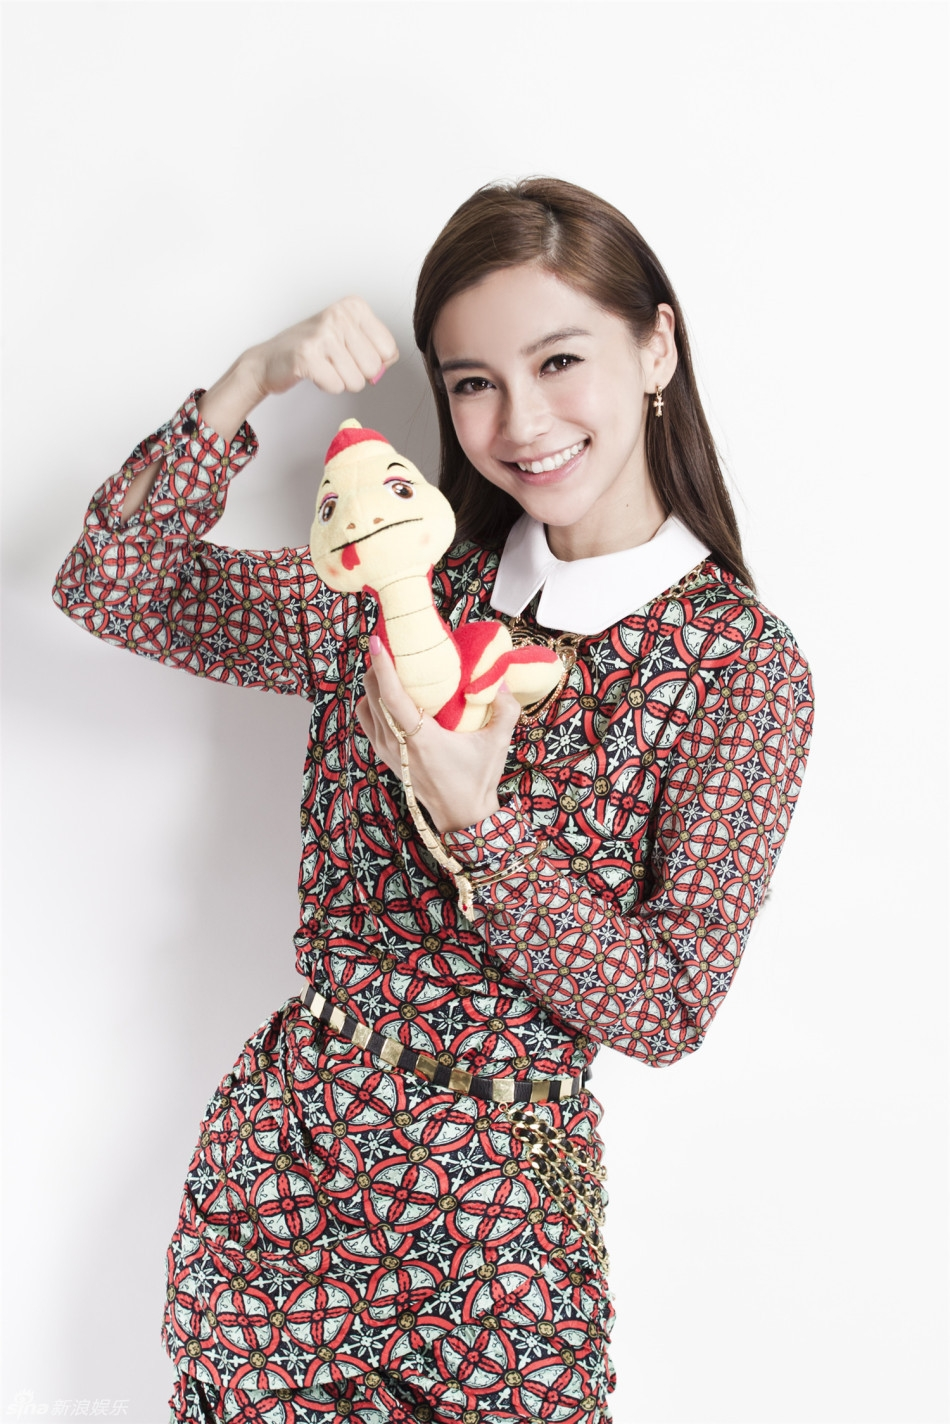 Roast Pork Sliced From A Rusty Cleaver: Angelababy - Fly